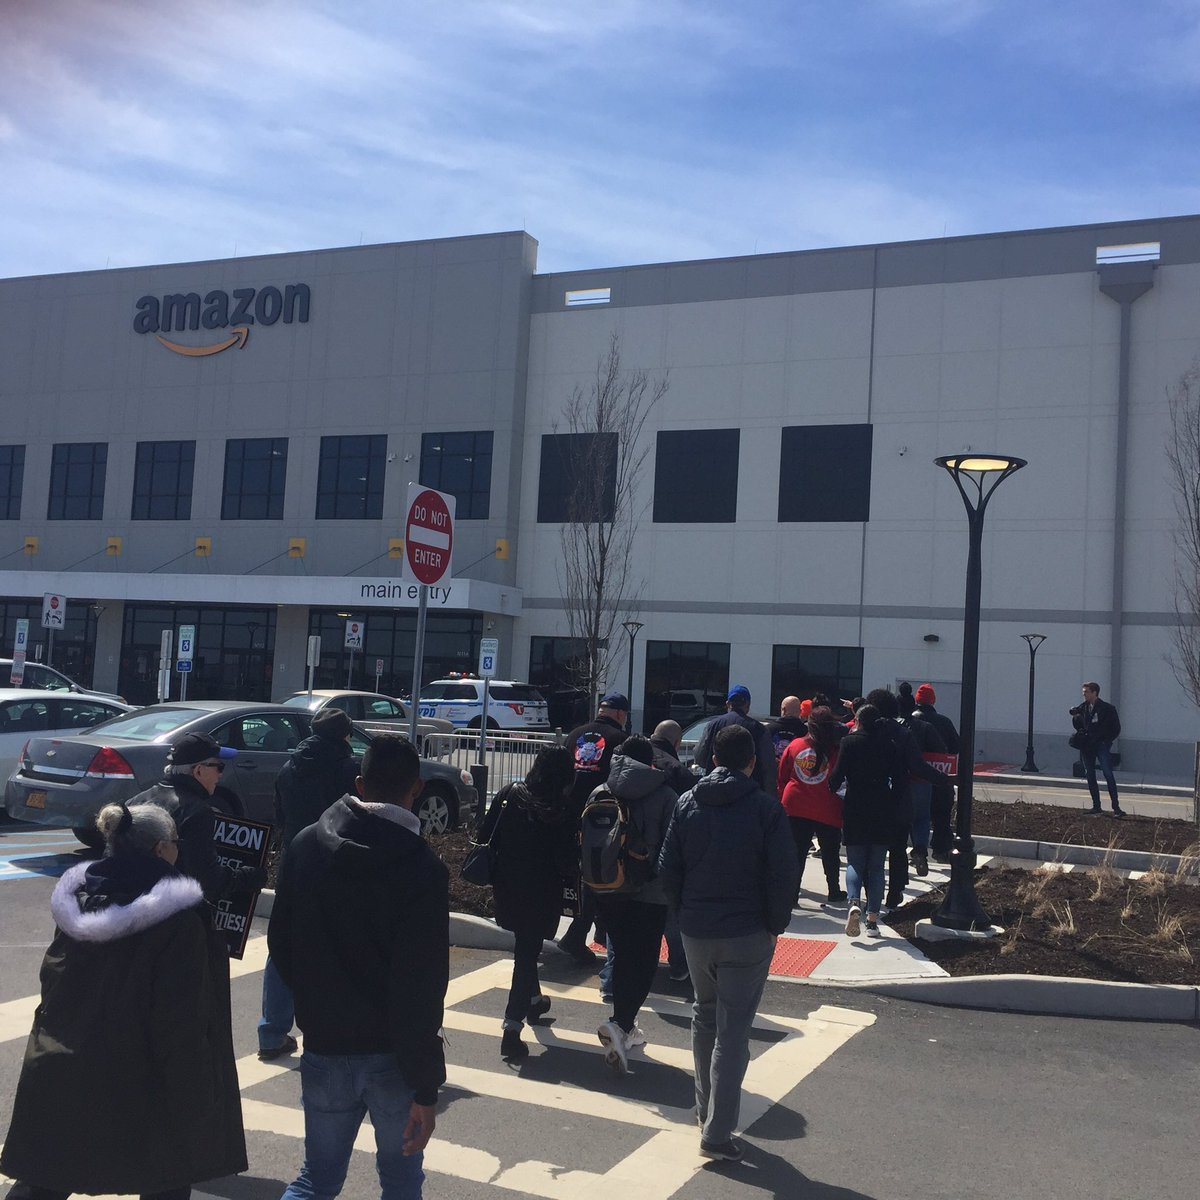 Community and labor delegation headed to the front door of @amazon #WeStandWithRashad #scamazon